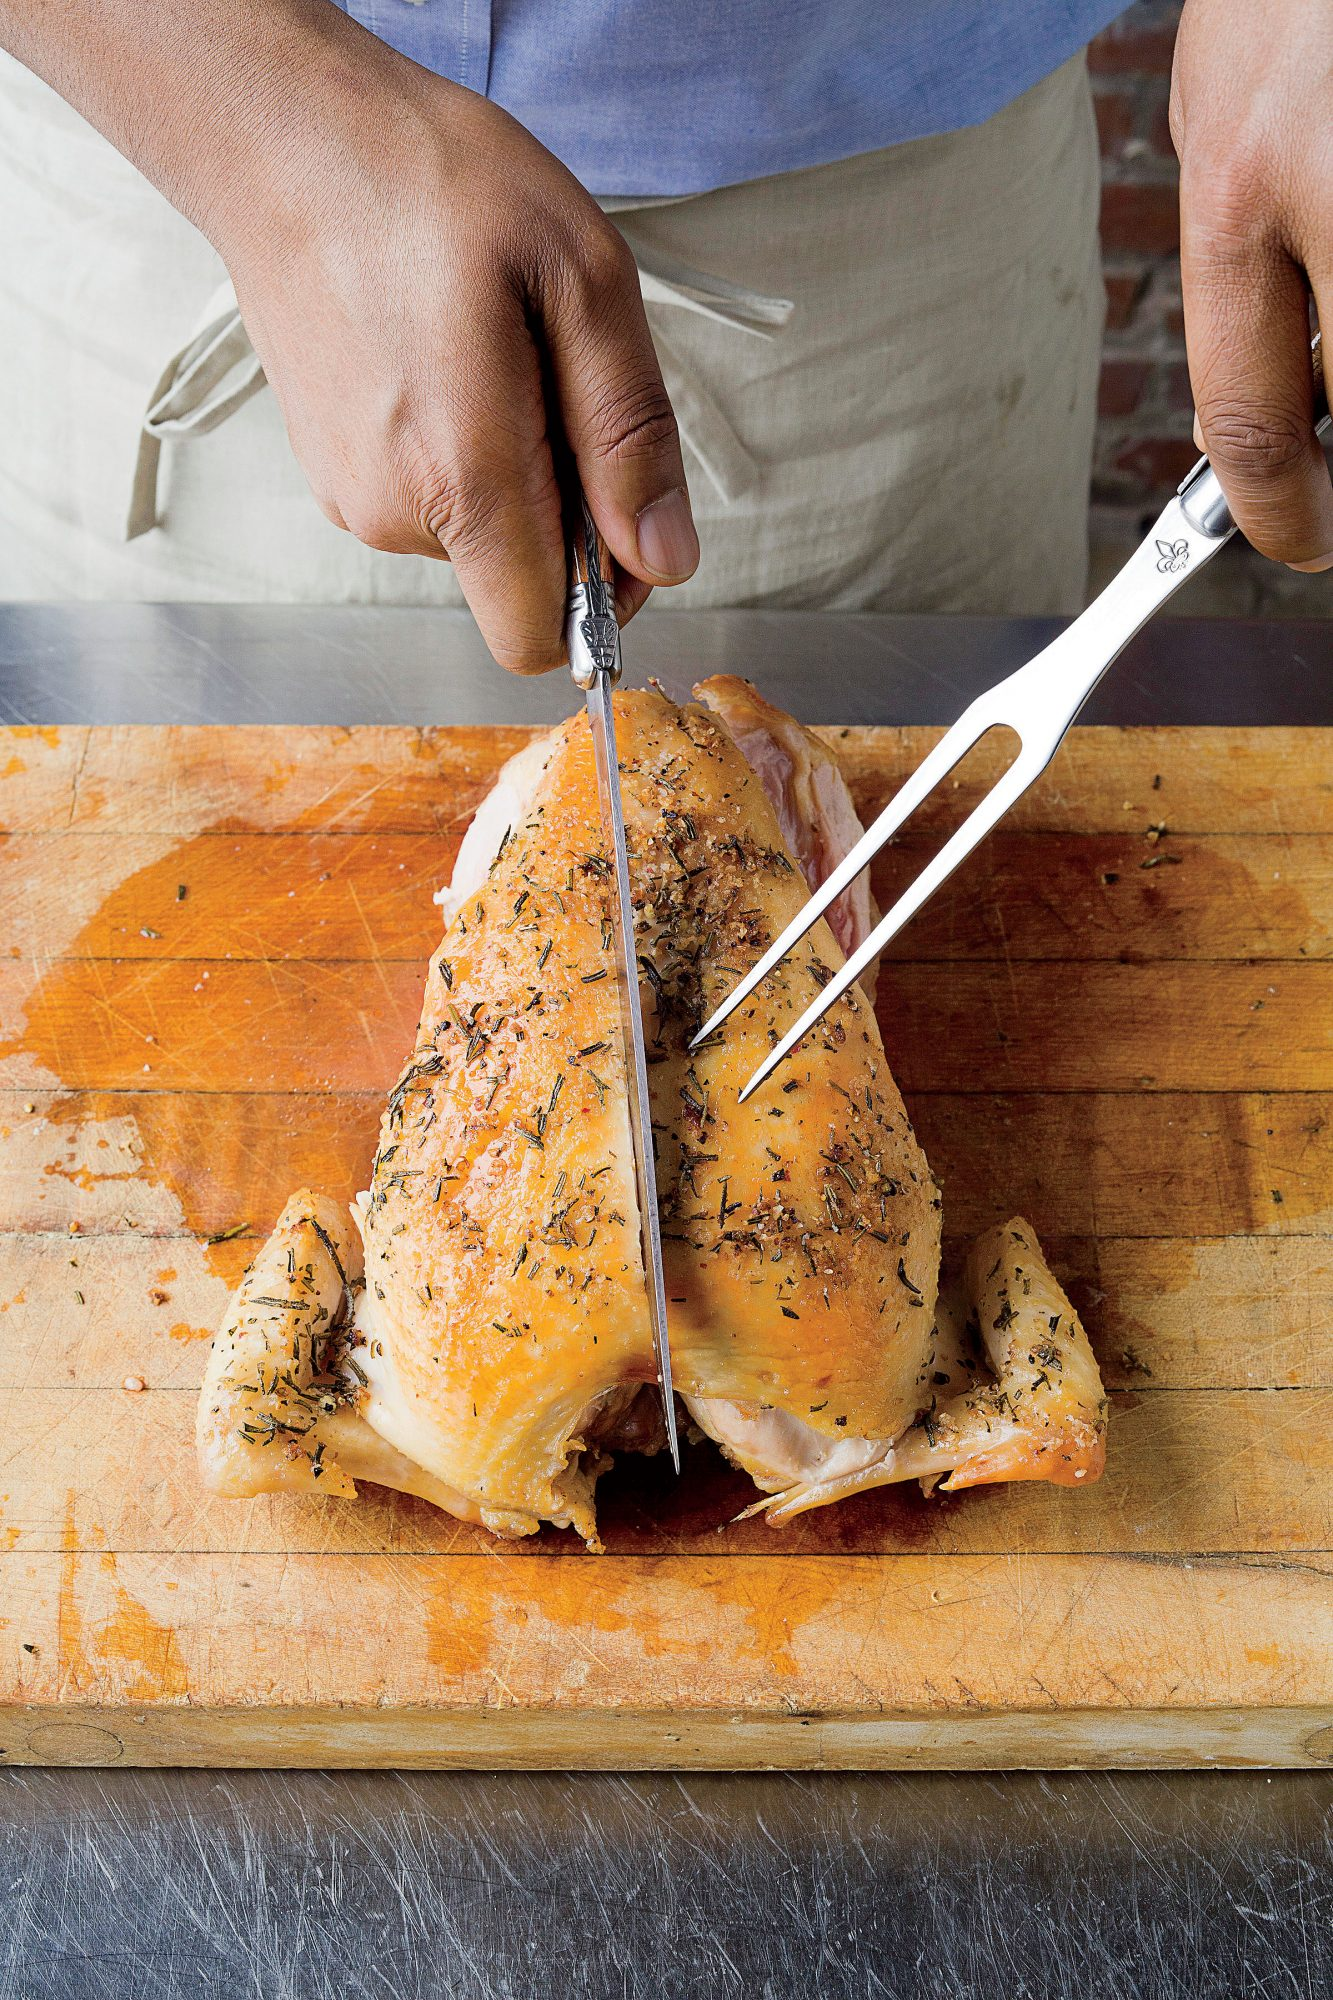 How To Carve a Chicken: Step 4